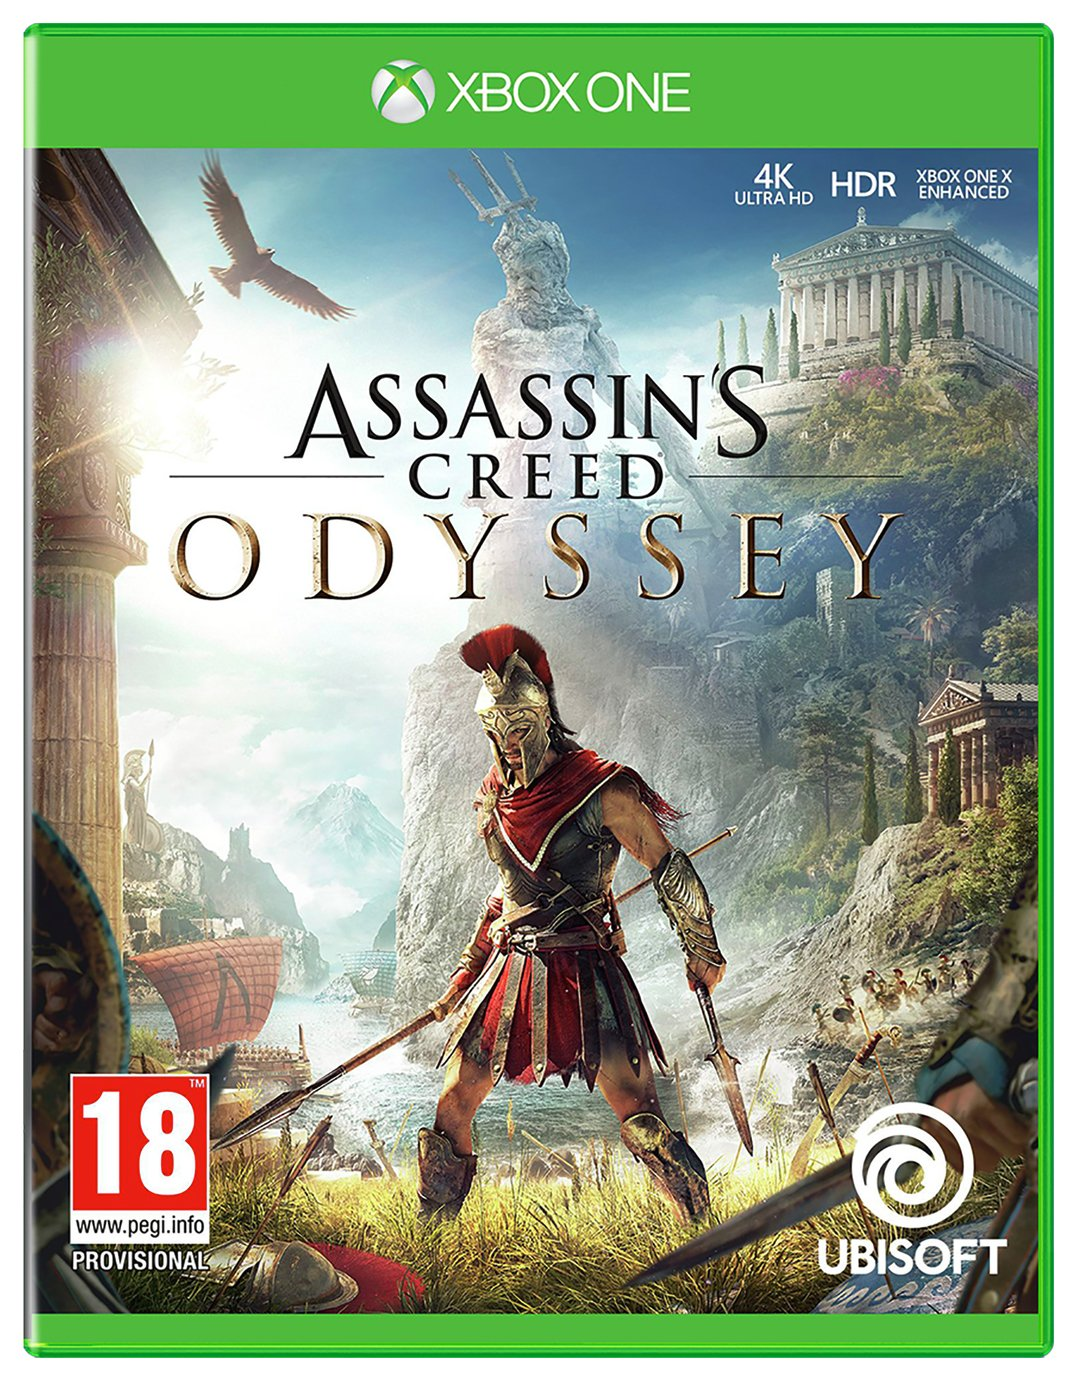 Xbox One Assassin's Creed Games